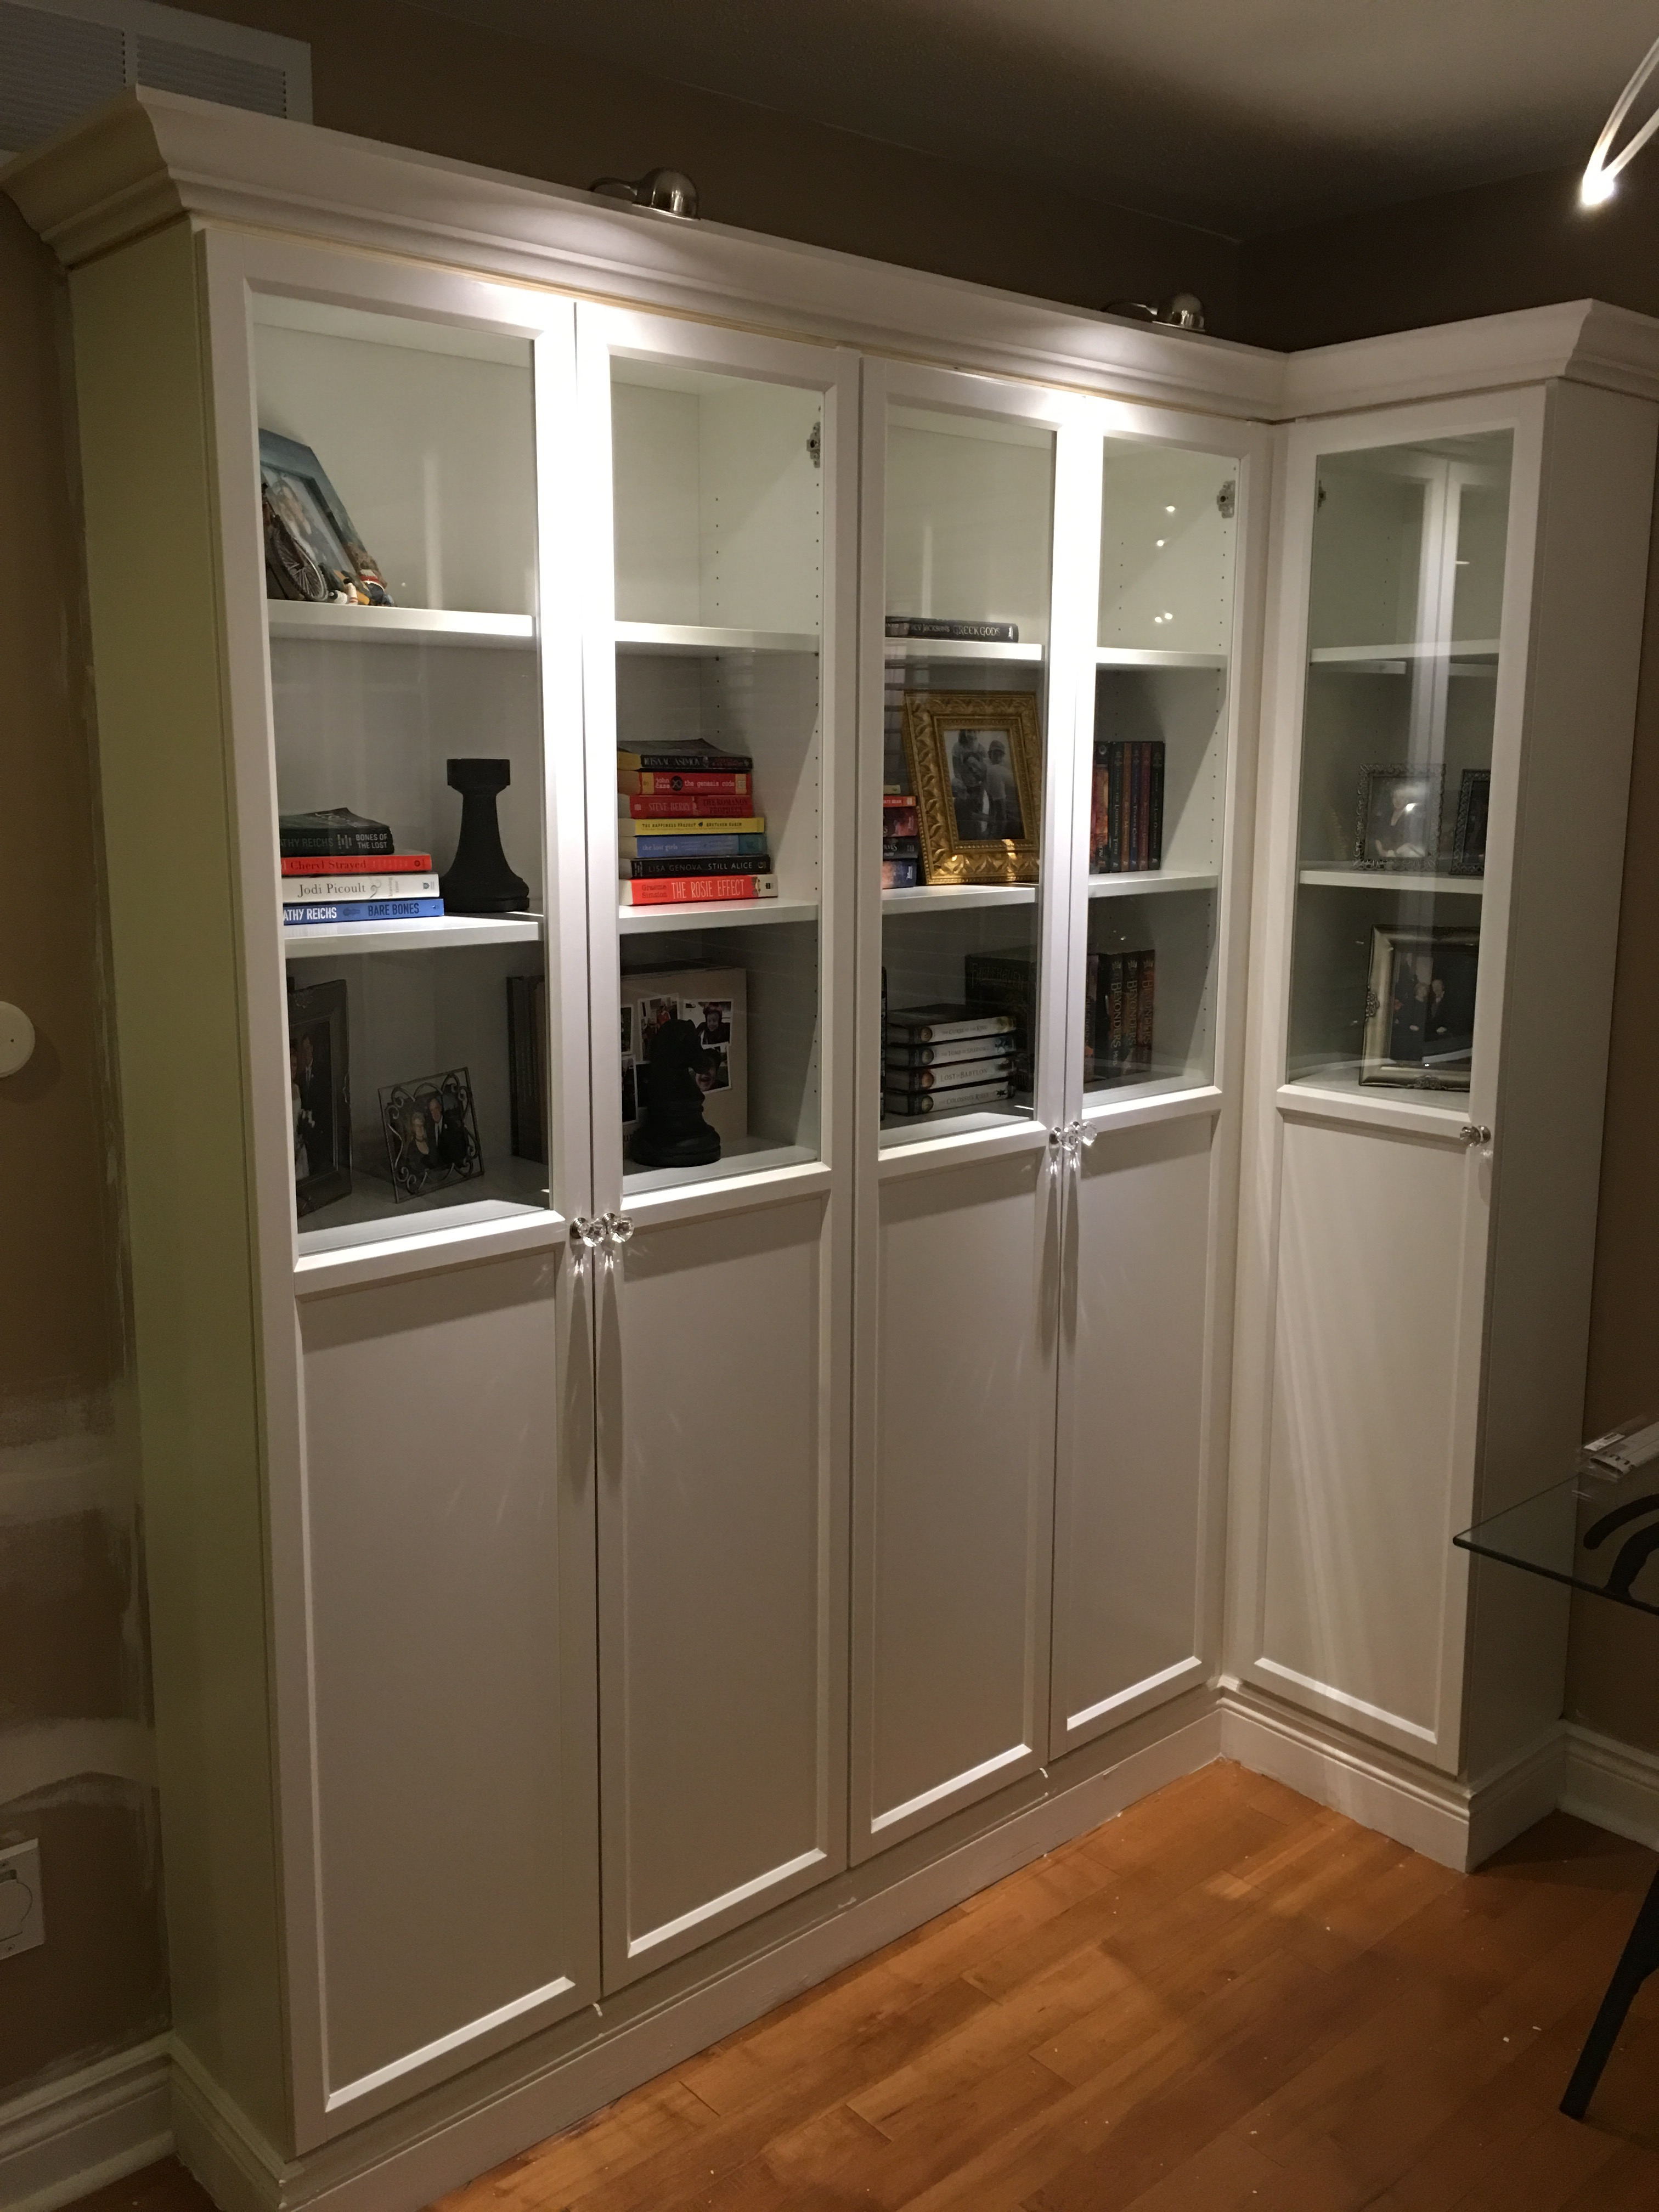 Picture of How to Make Ikea Bookshelves Look Like a Professional Built-in